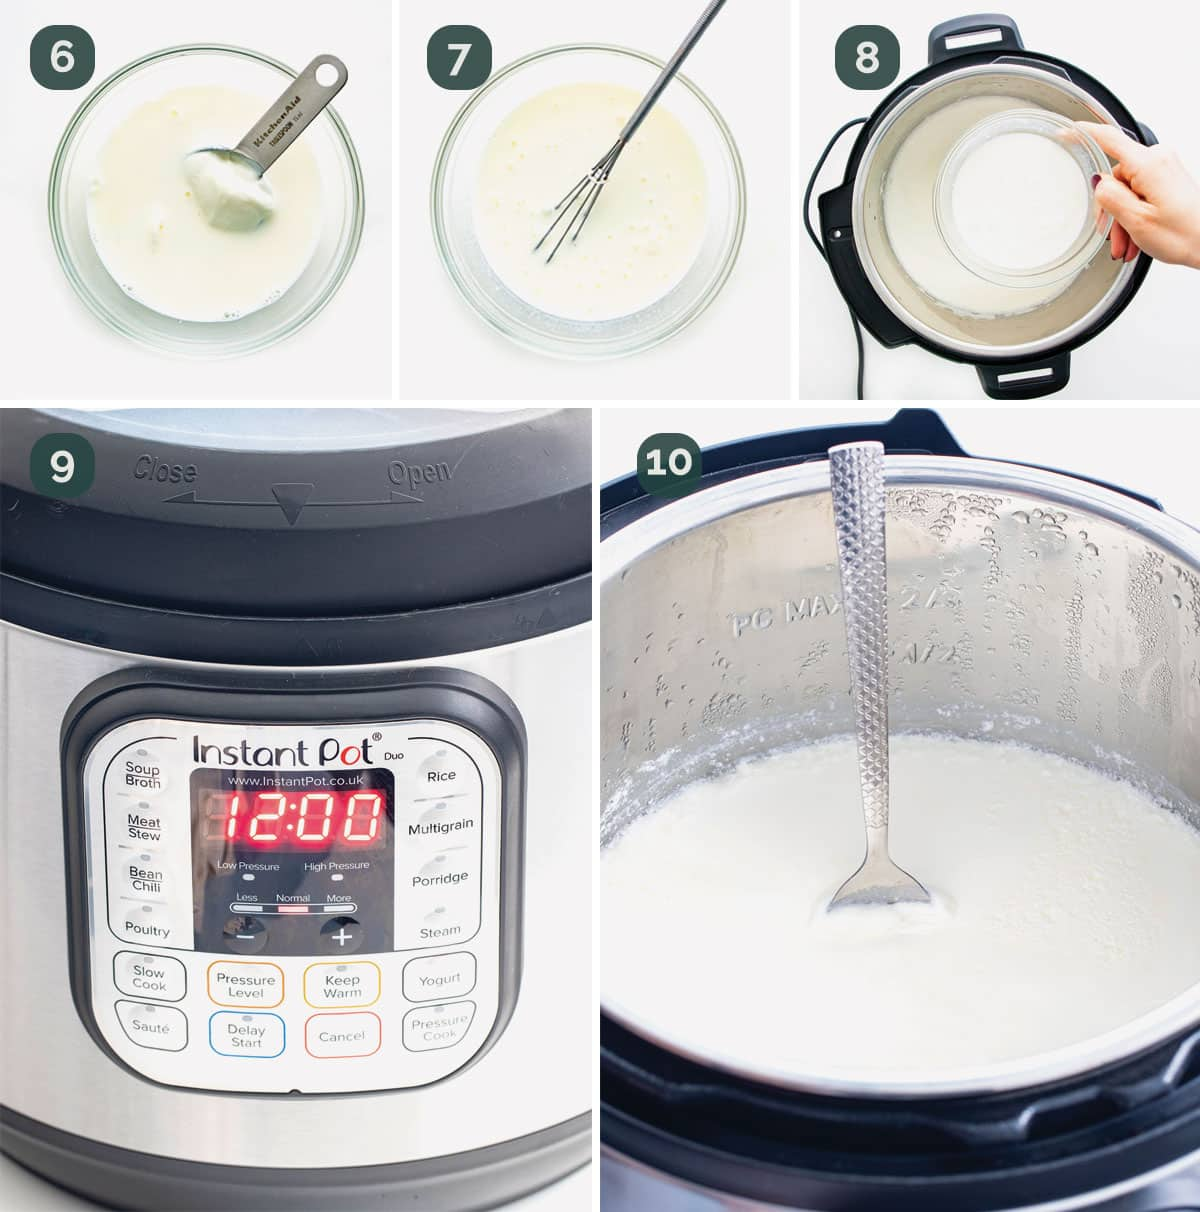 process shots showing how to make yogurt in an instant pot.